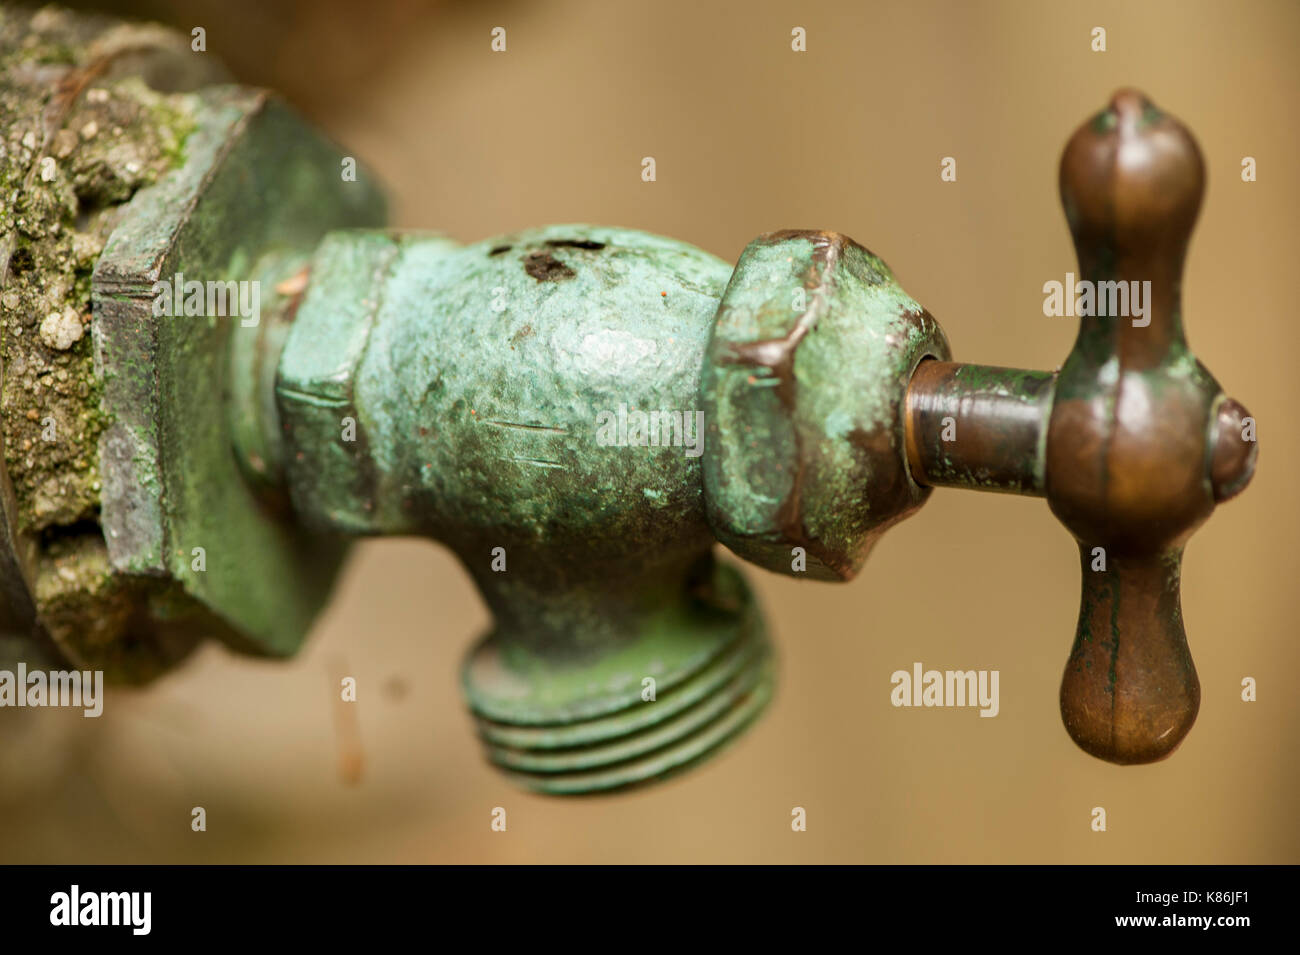 Bronze and Patina Copper Water Spigot - Stock Image